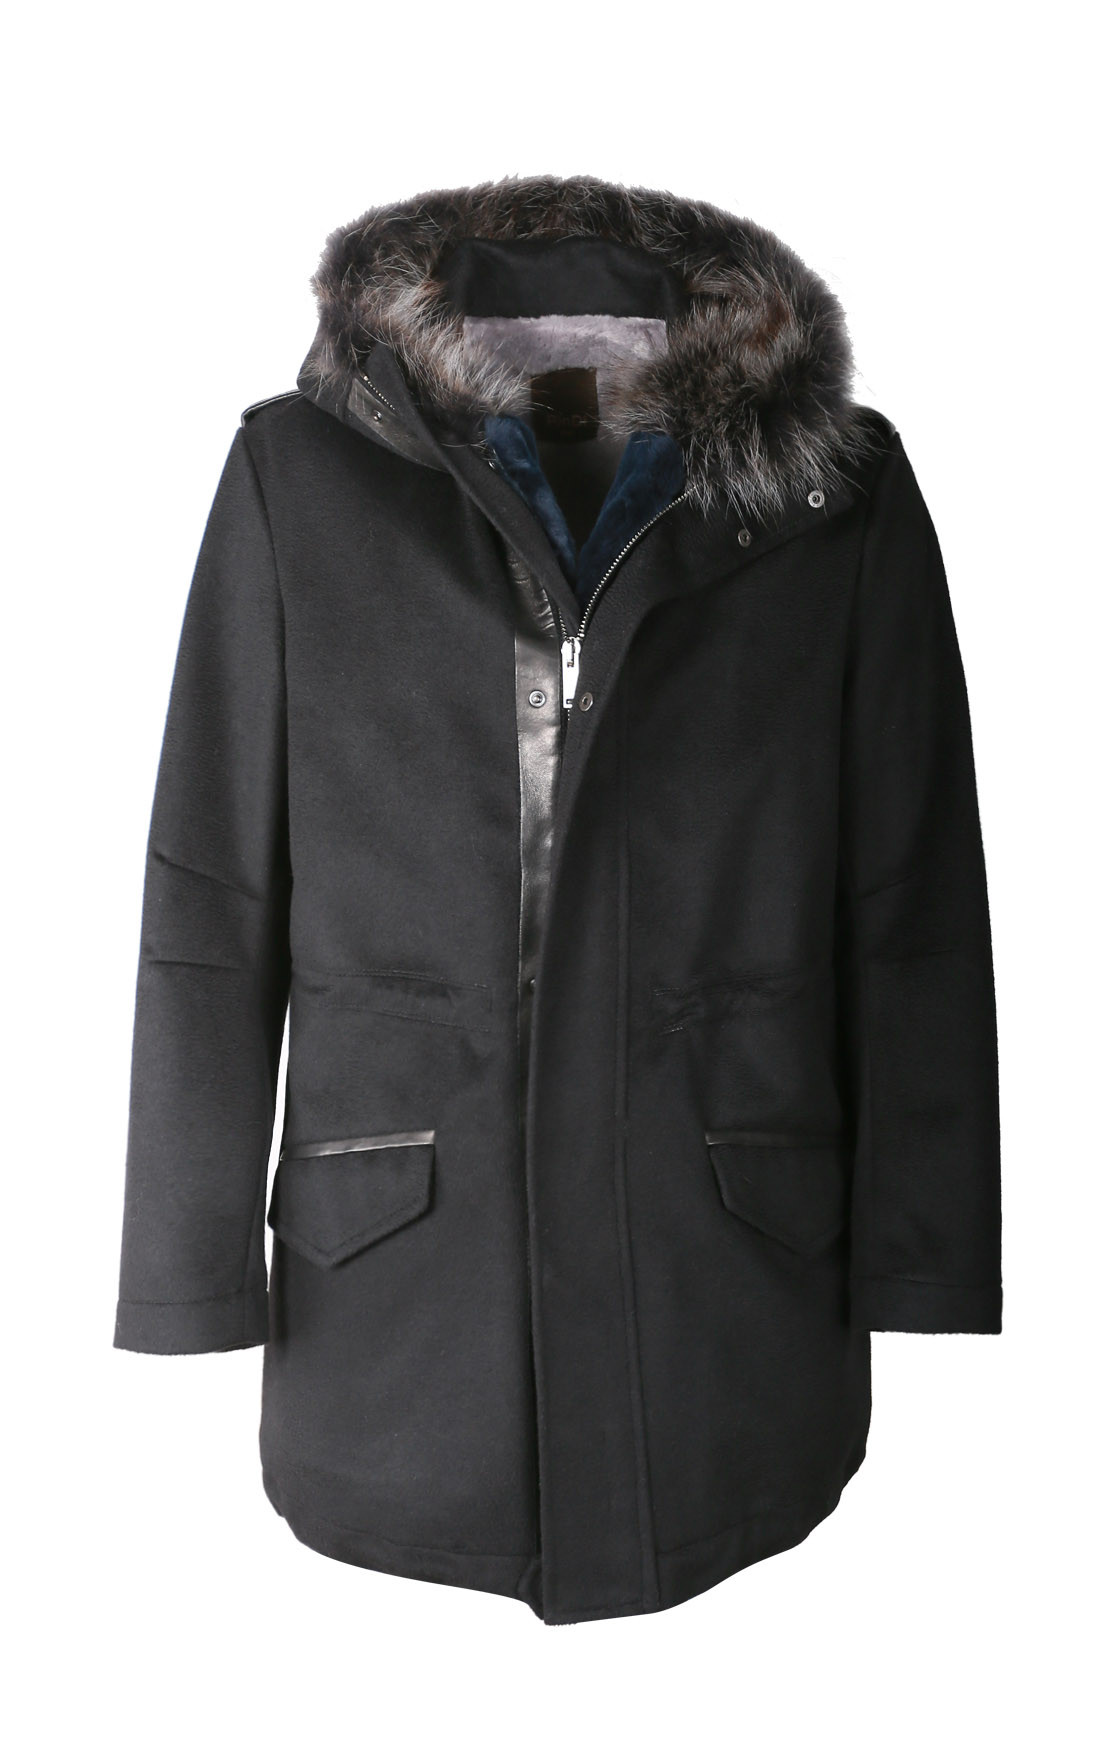 RinDi - Black Cashmere Coat with Beaver Fur (003TE0U6)